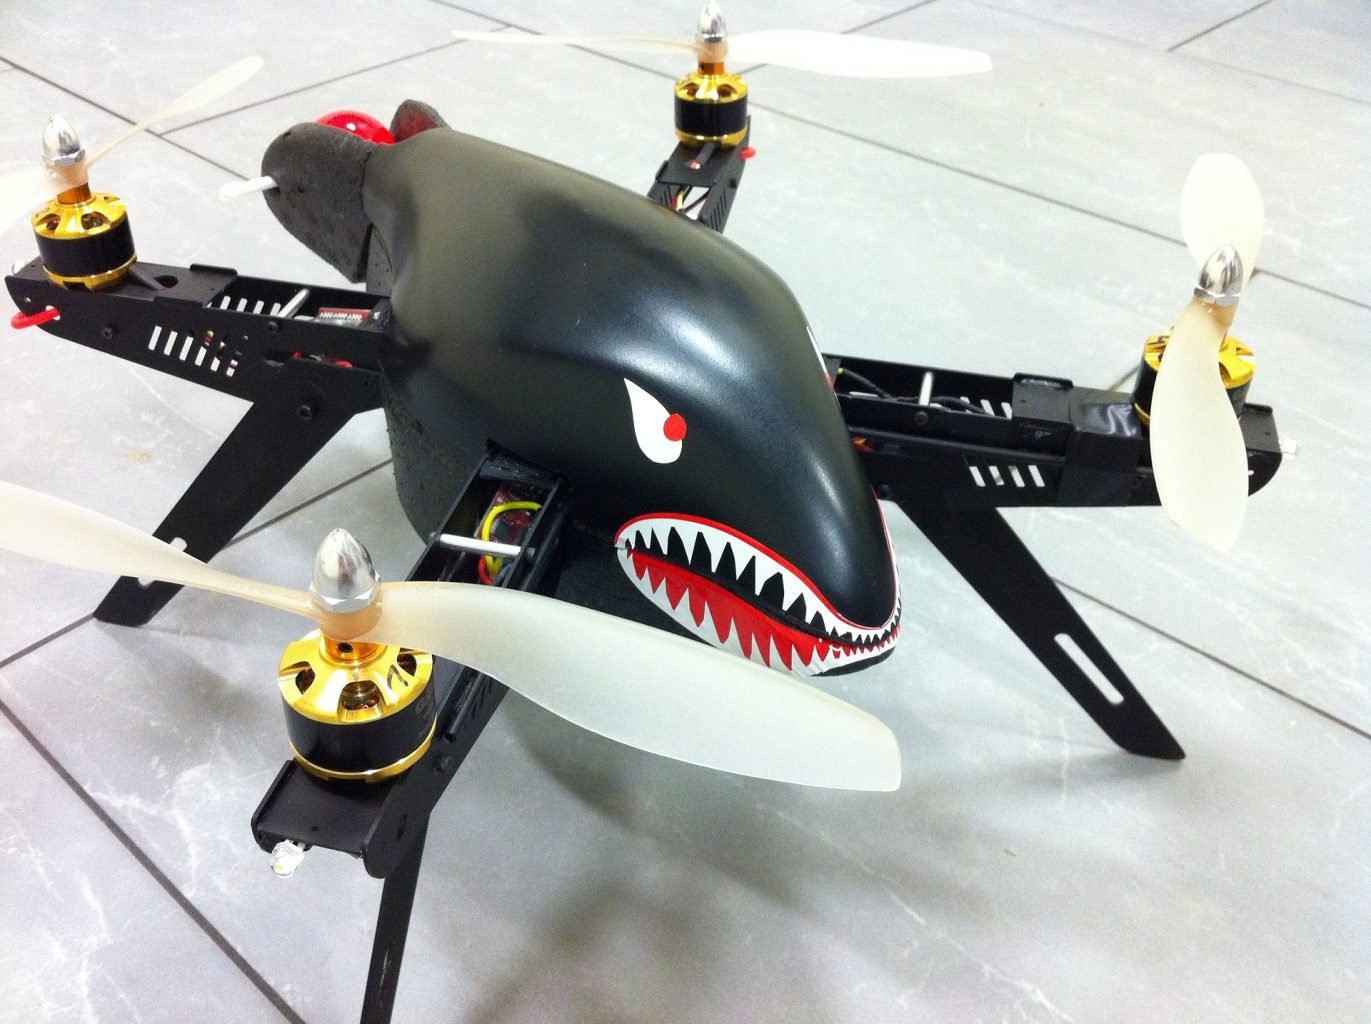 The Rise of Unmanned Aerial Vehicles